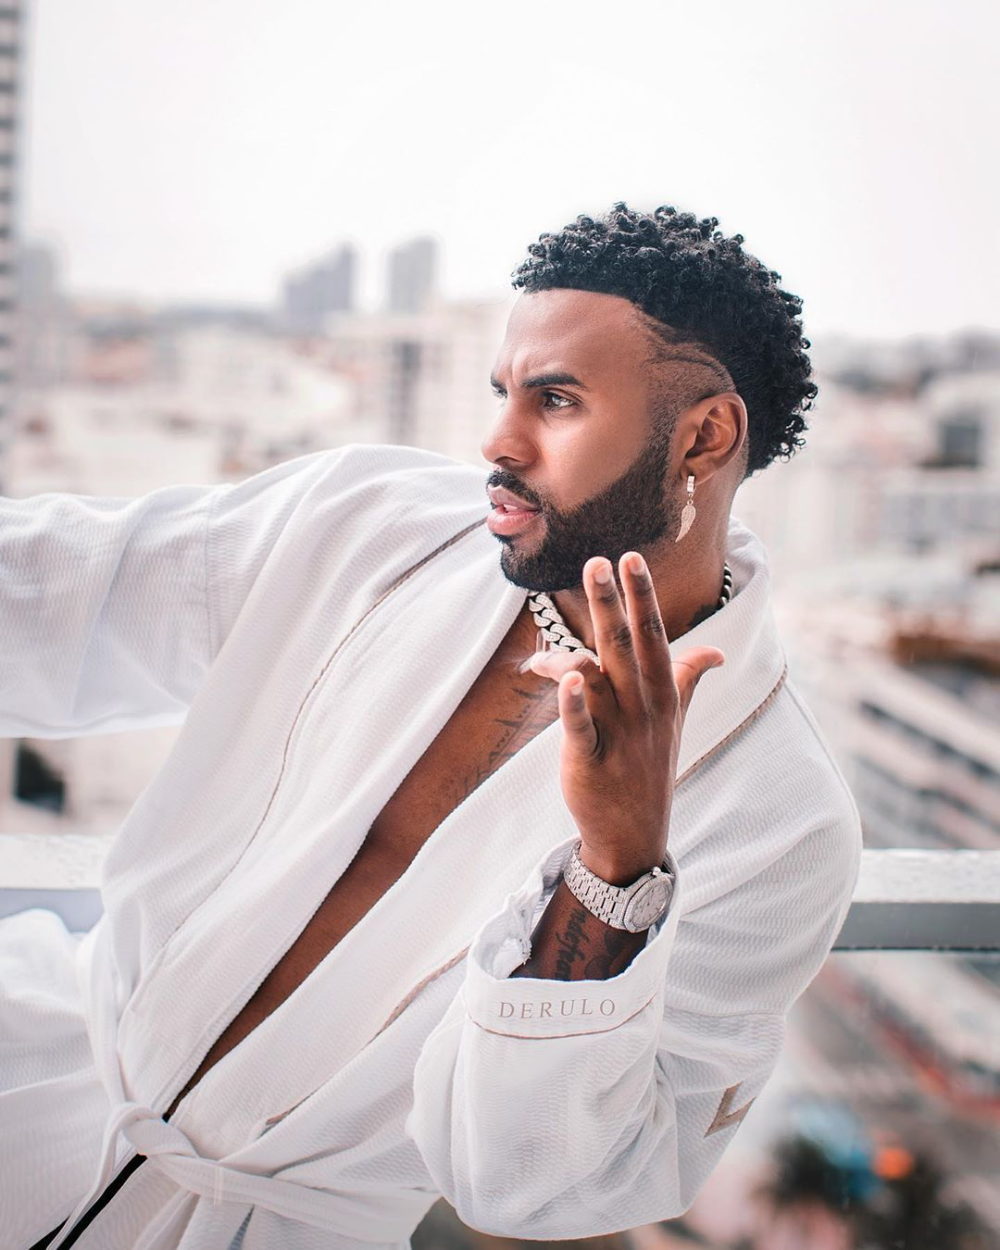 Jason Derulo Hairstyle : jason, derulo, hairstyle, Jason, Derulo, Hairstyle, Derulo,, Celebrities, Male,, Hairstyles